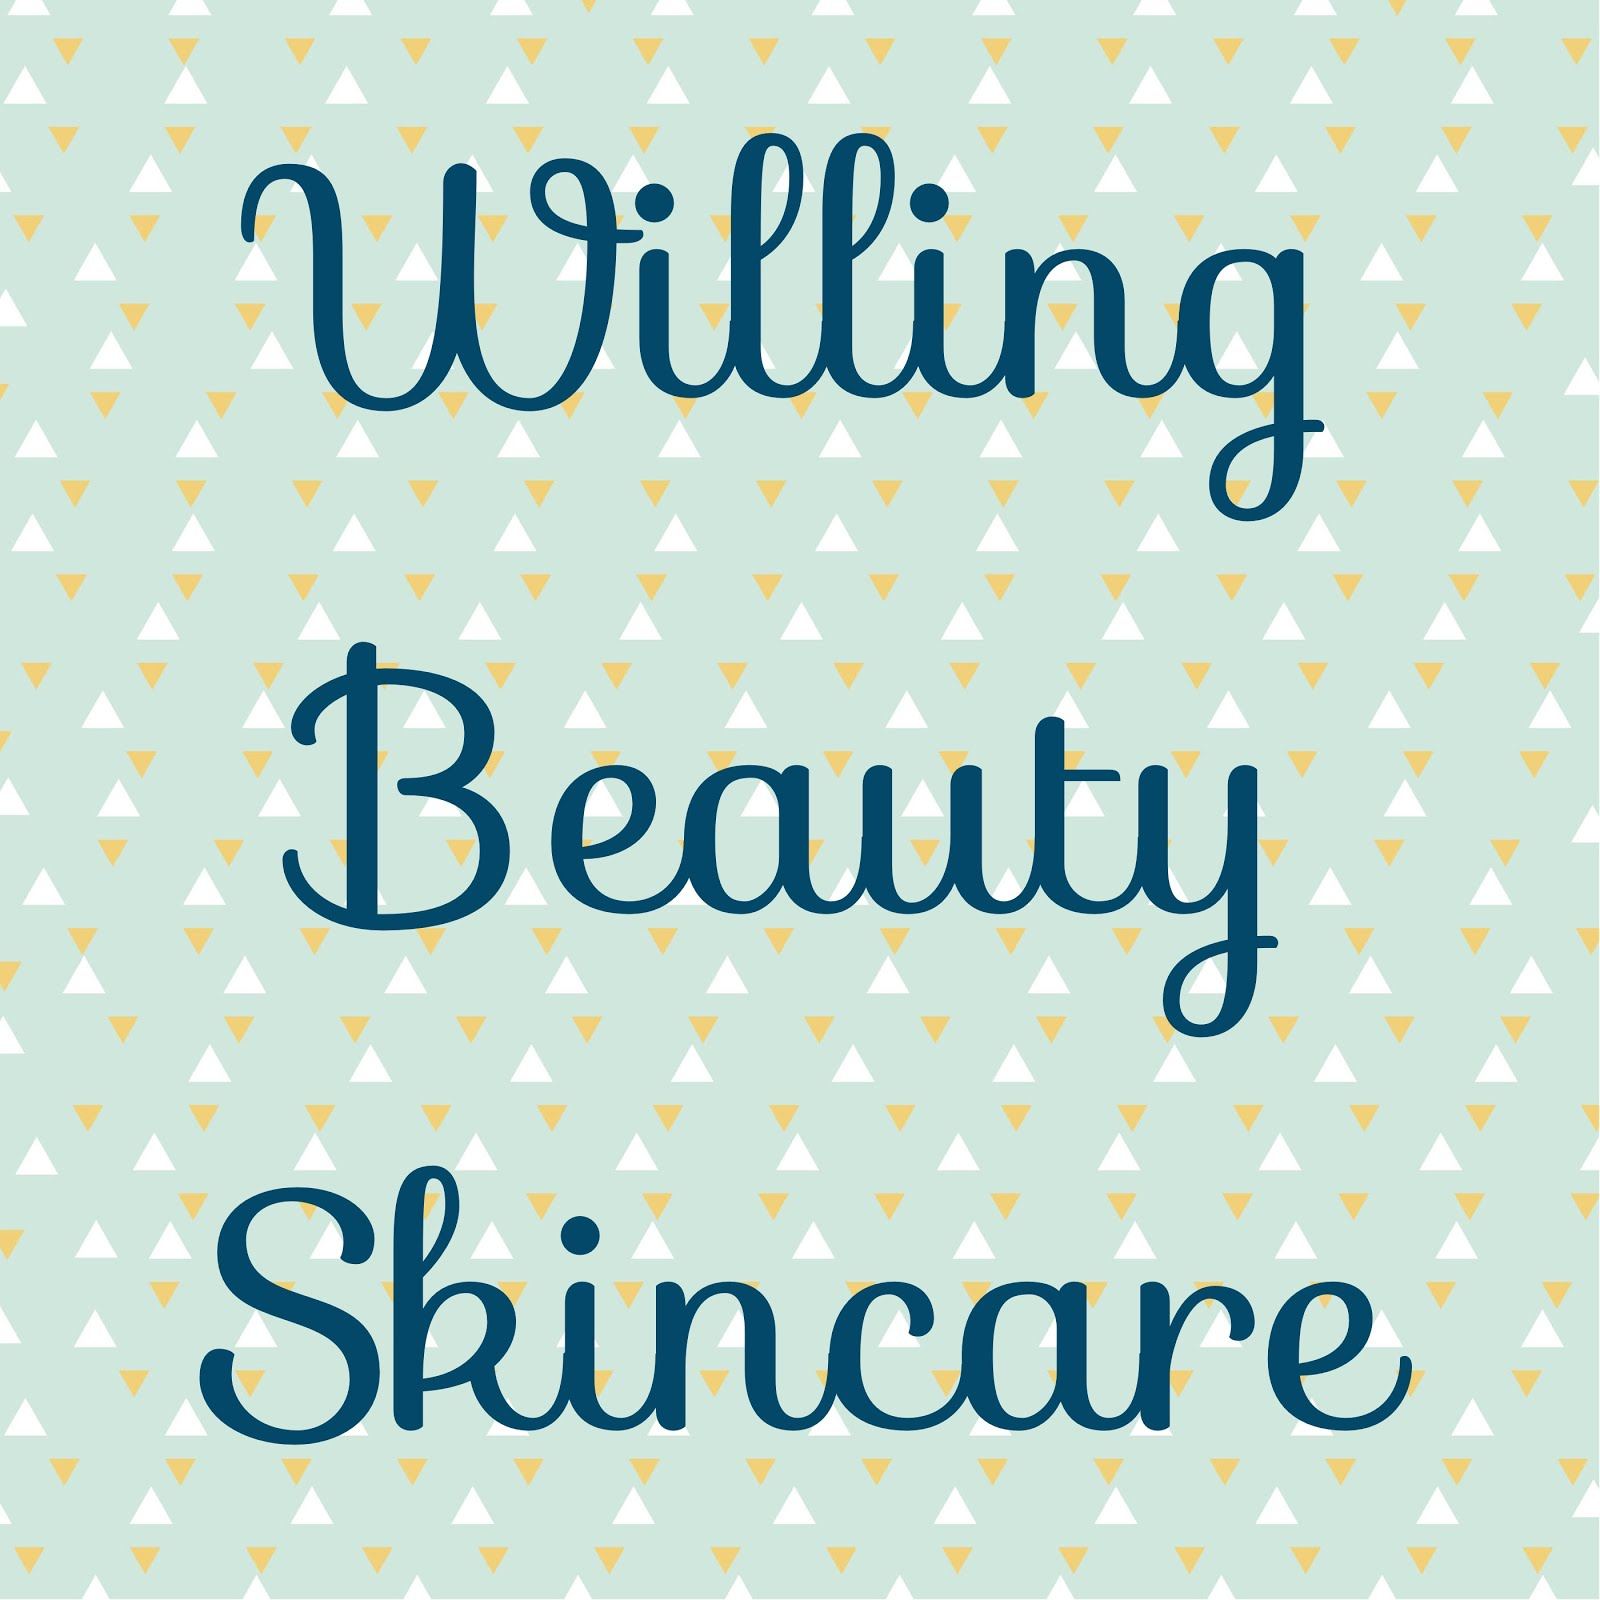 Willing Beauty Skincare